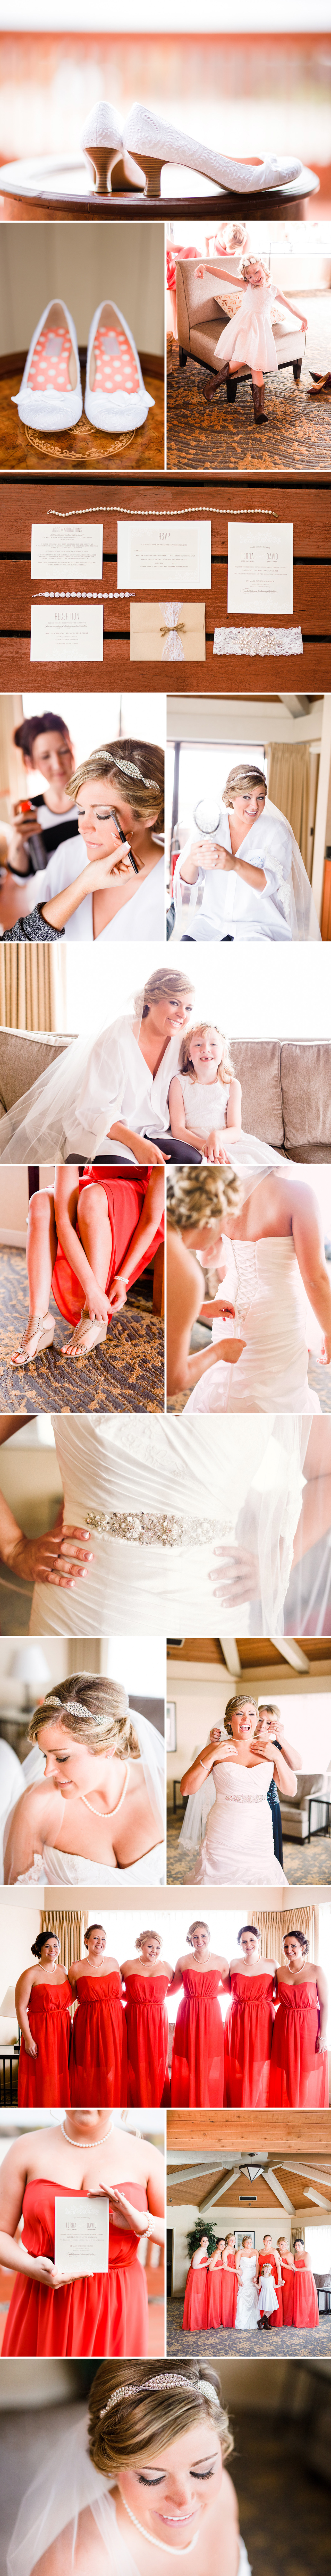 chicago-fine-art-wedding-photography-lang1